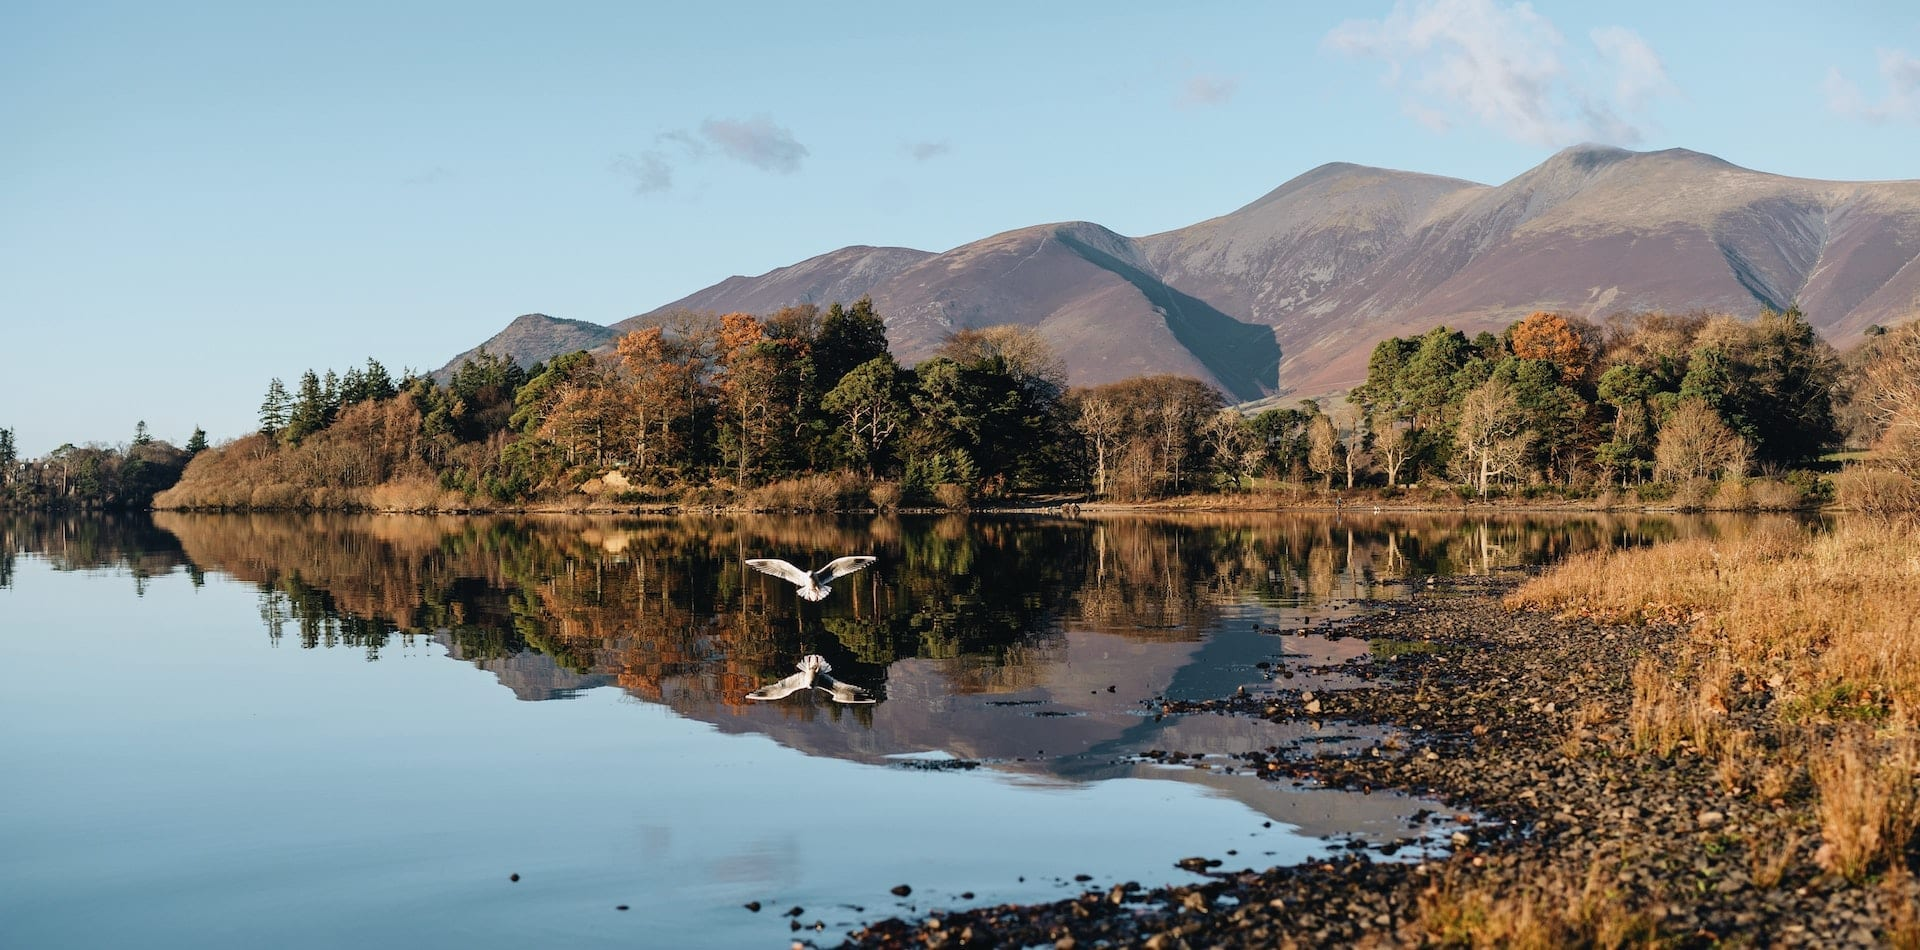 picturesque reflection of a bird swooning over a lake in the Lake District, Cumbria, UK